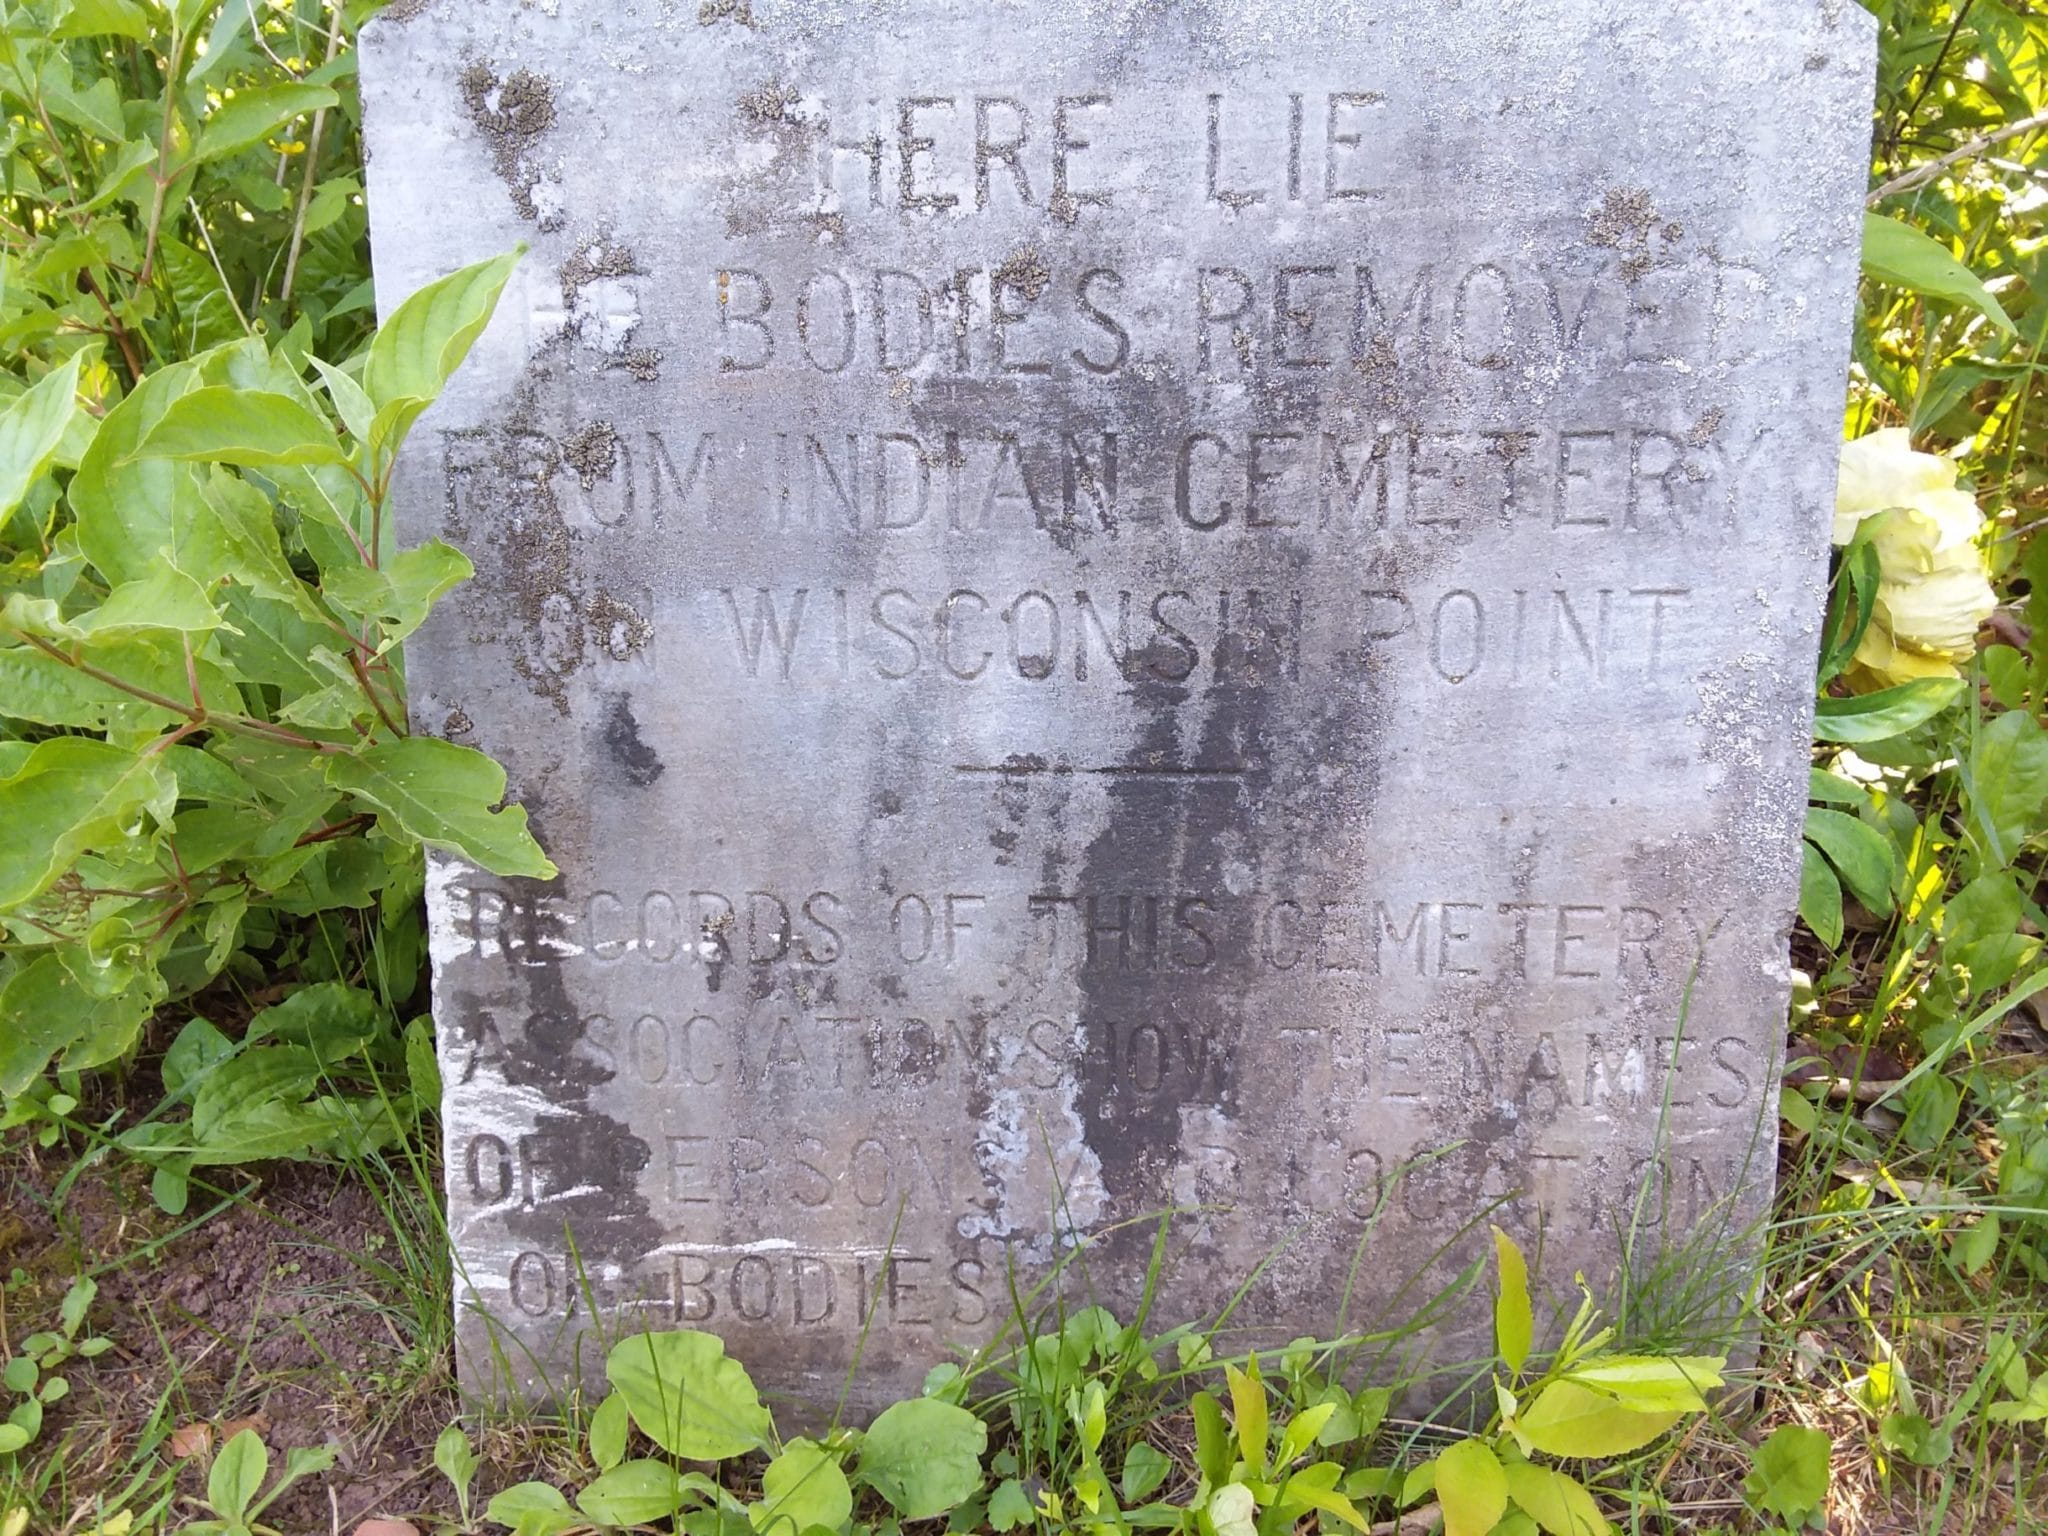 What is remarkable is the Don Cemetery